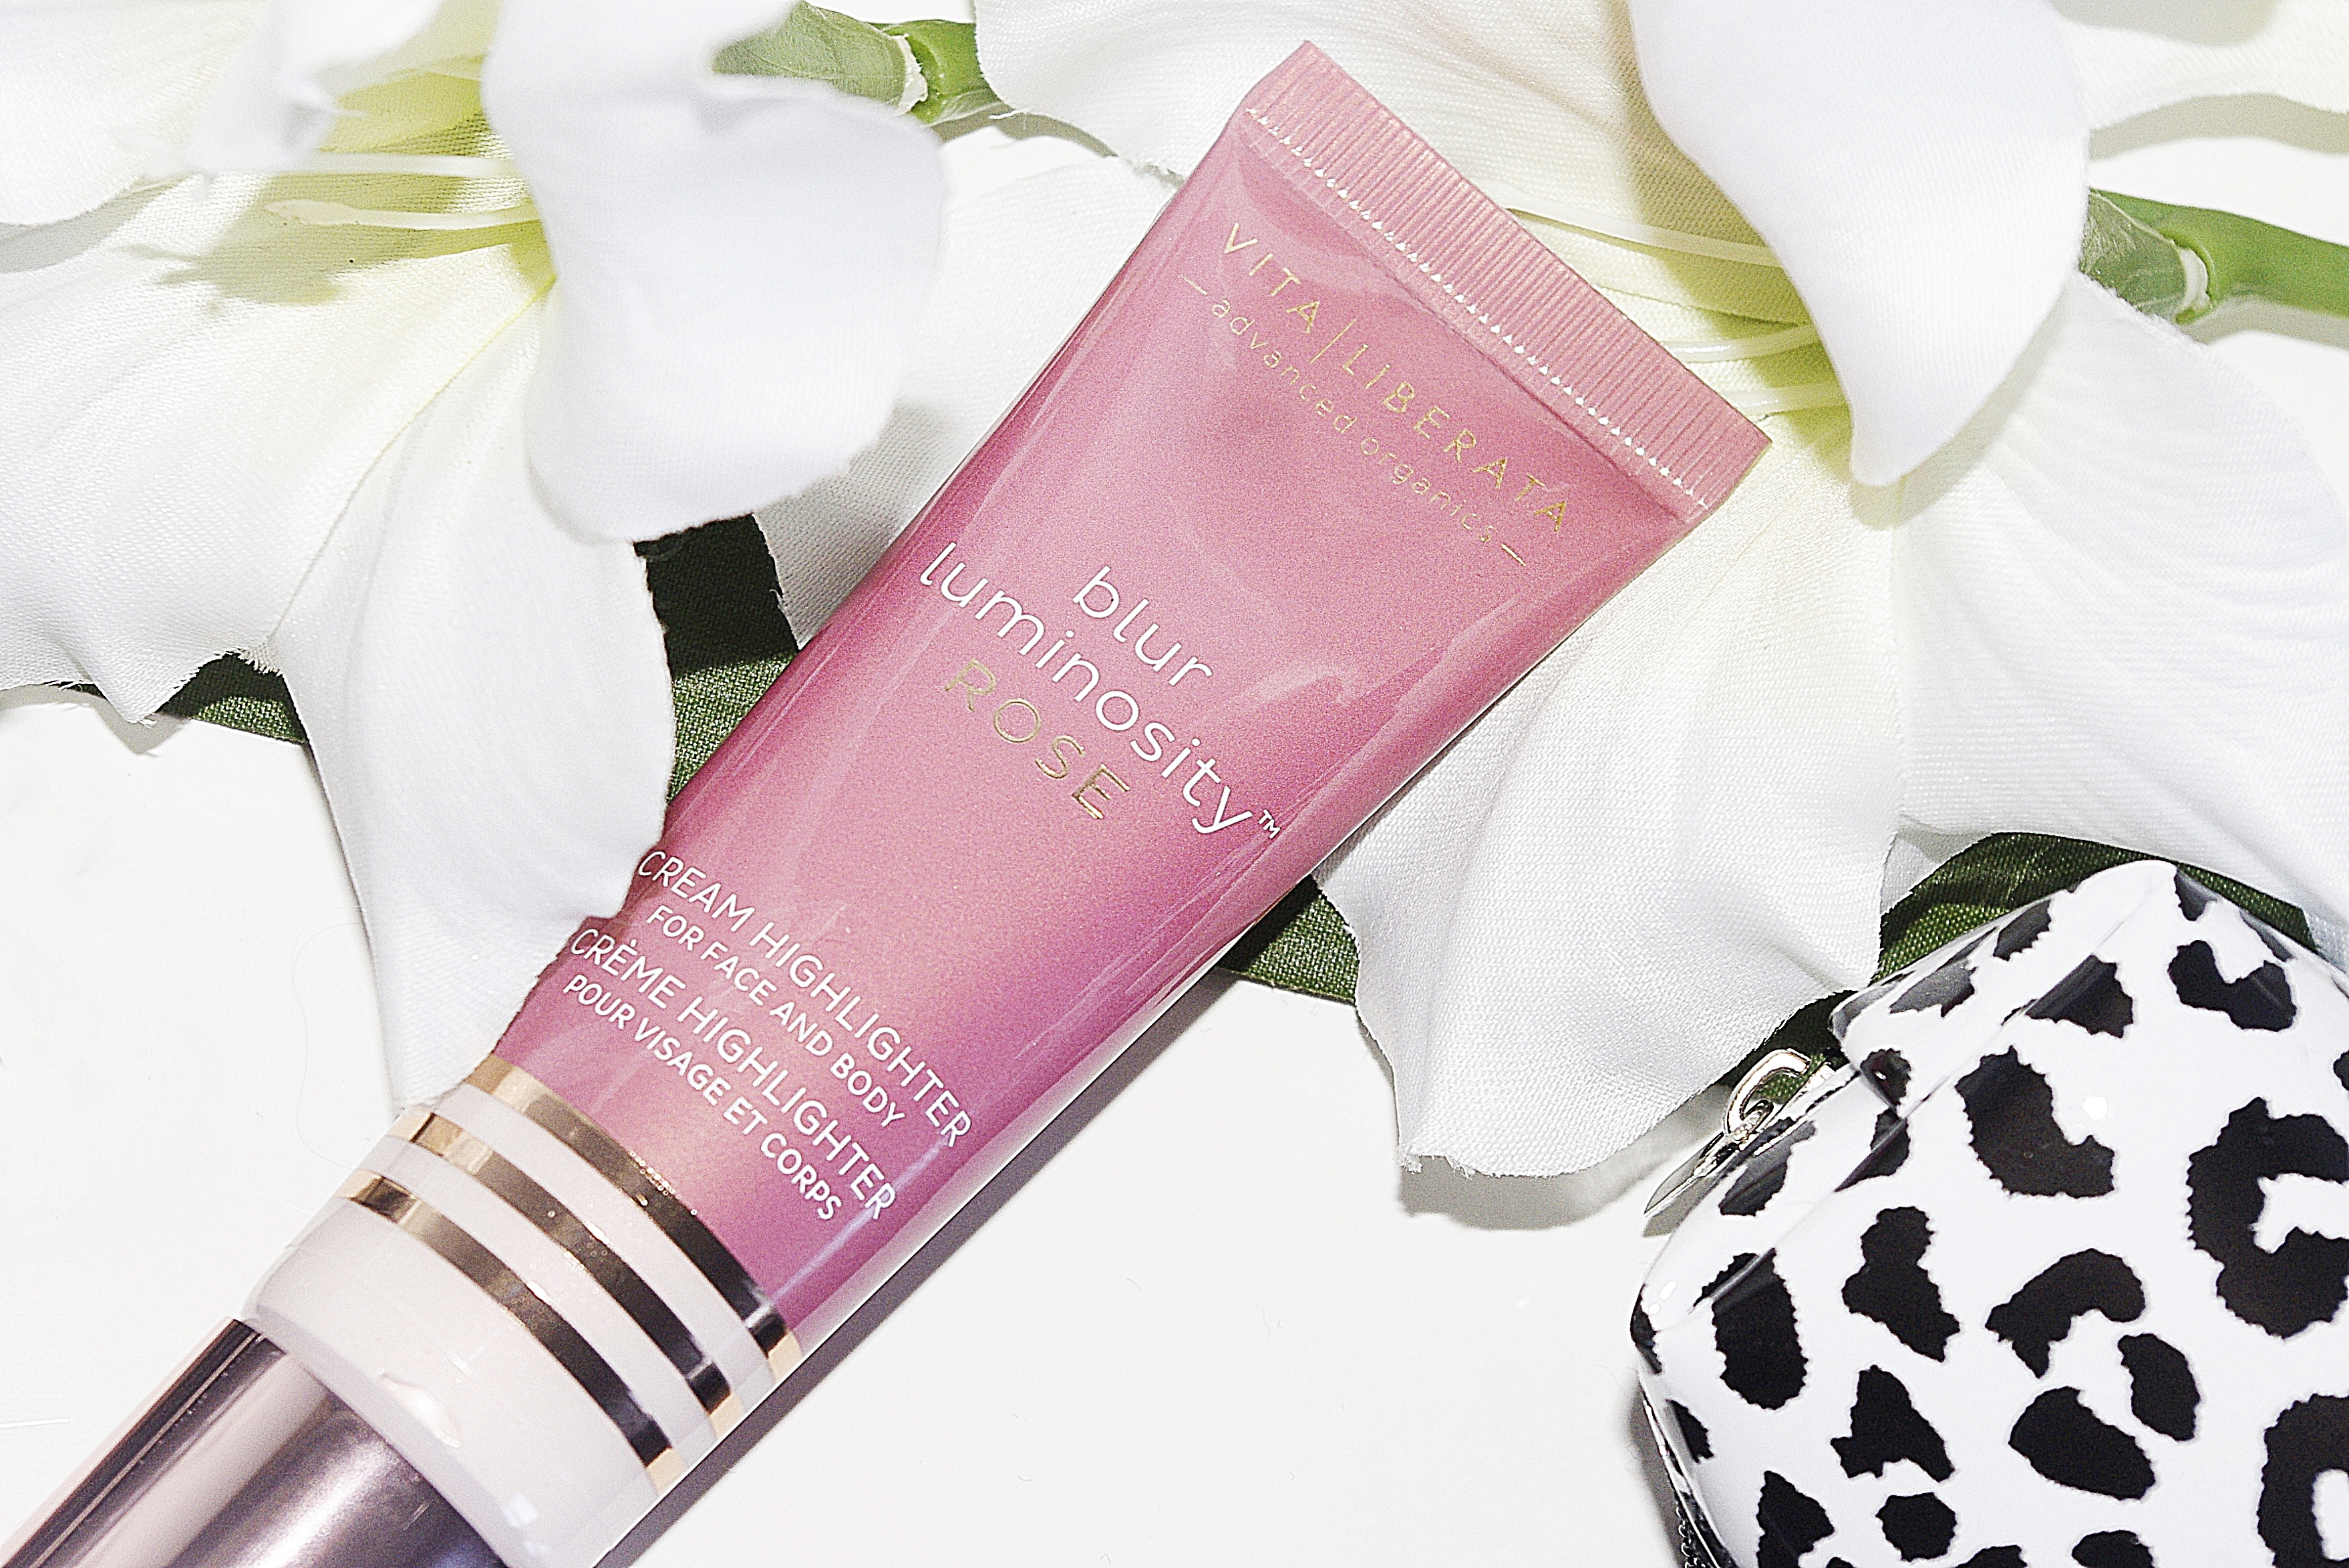 Vita Liberata Blur Luminosity - Rose